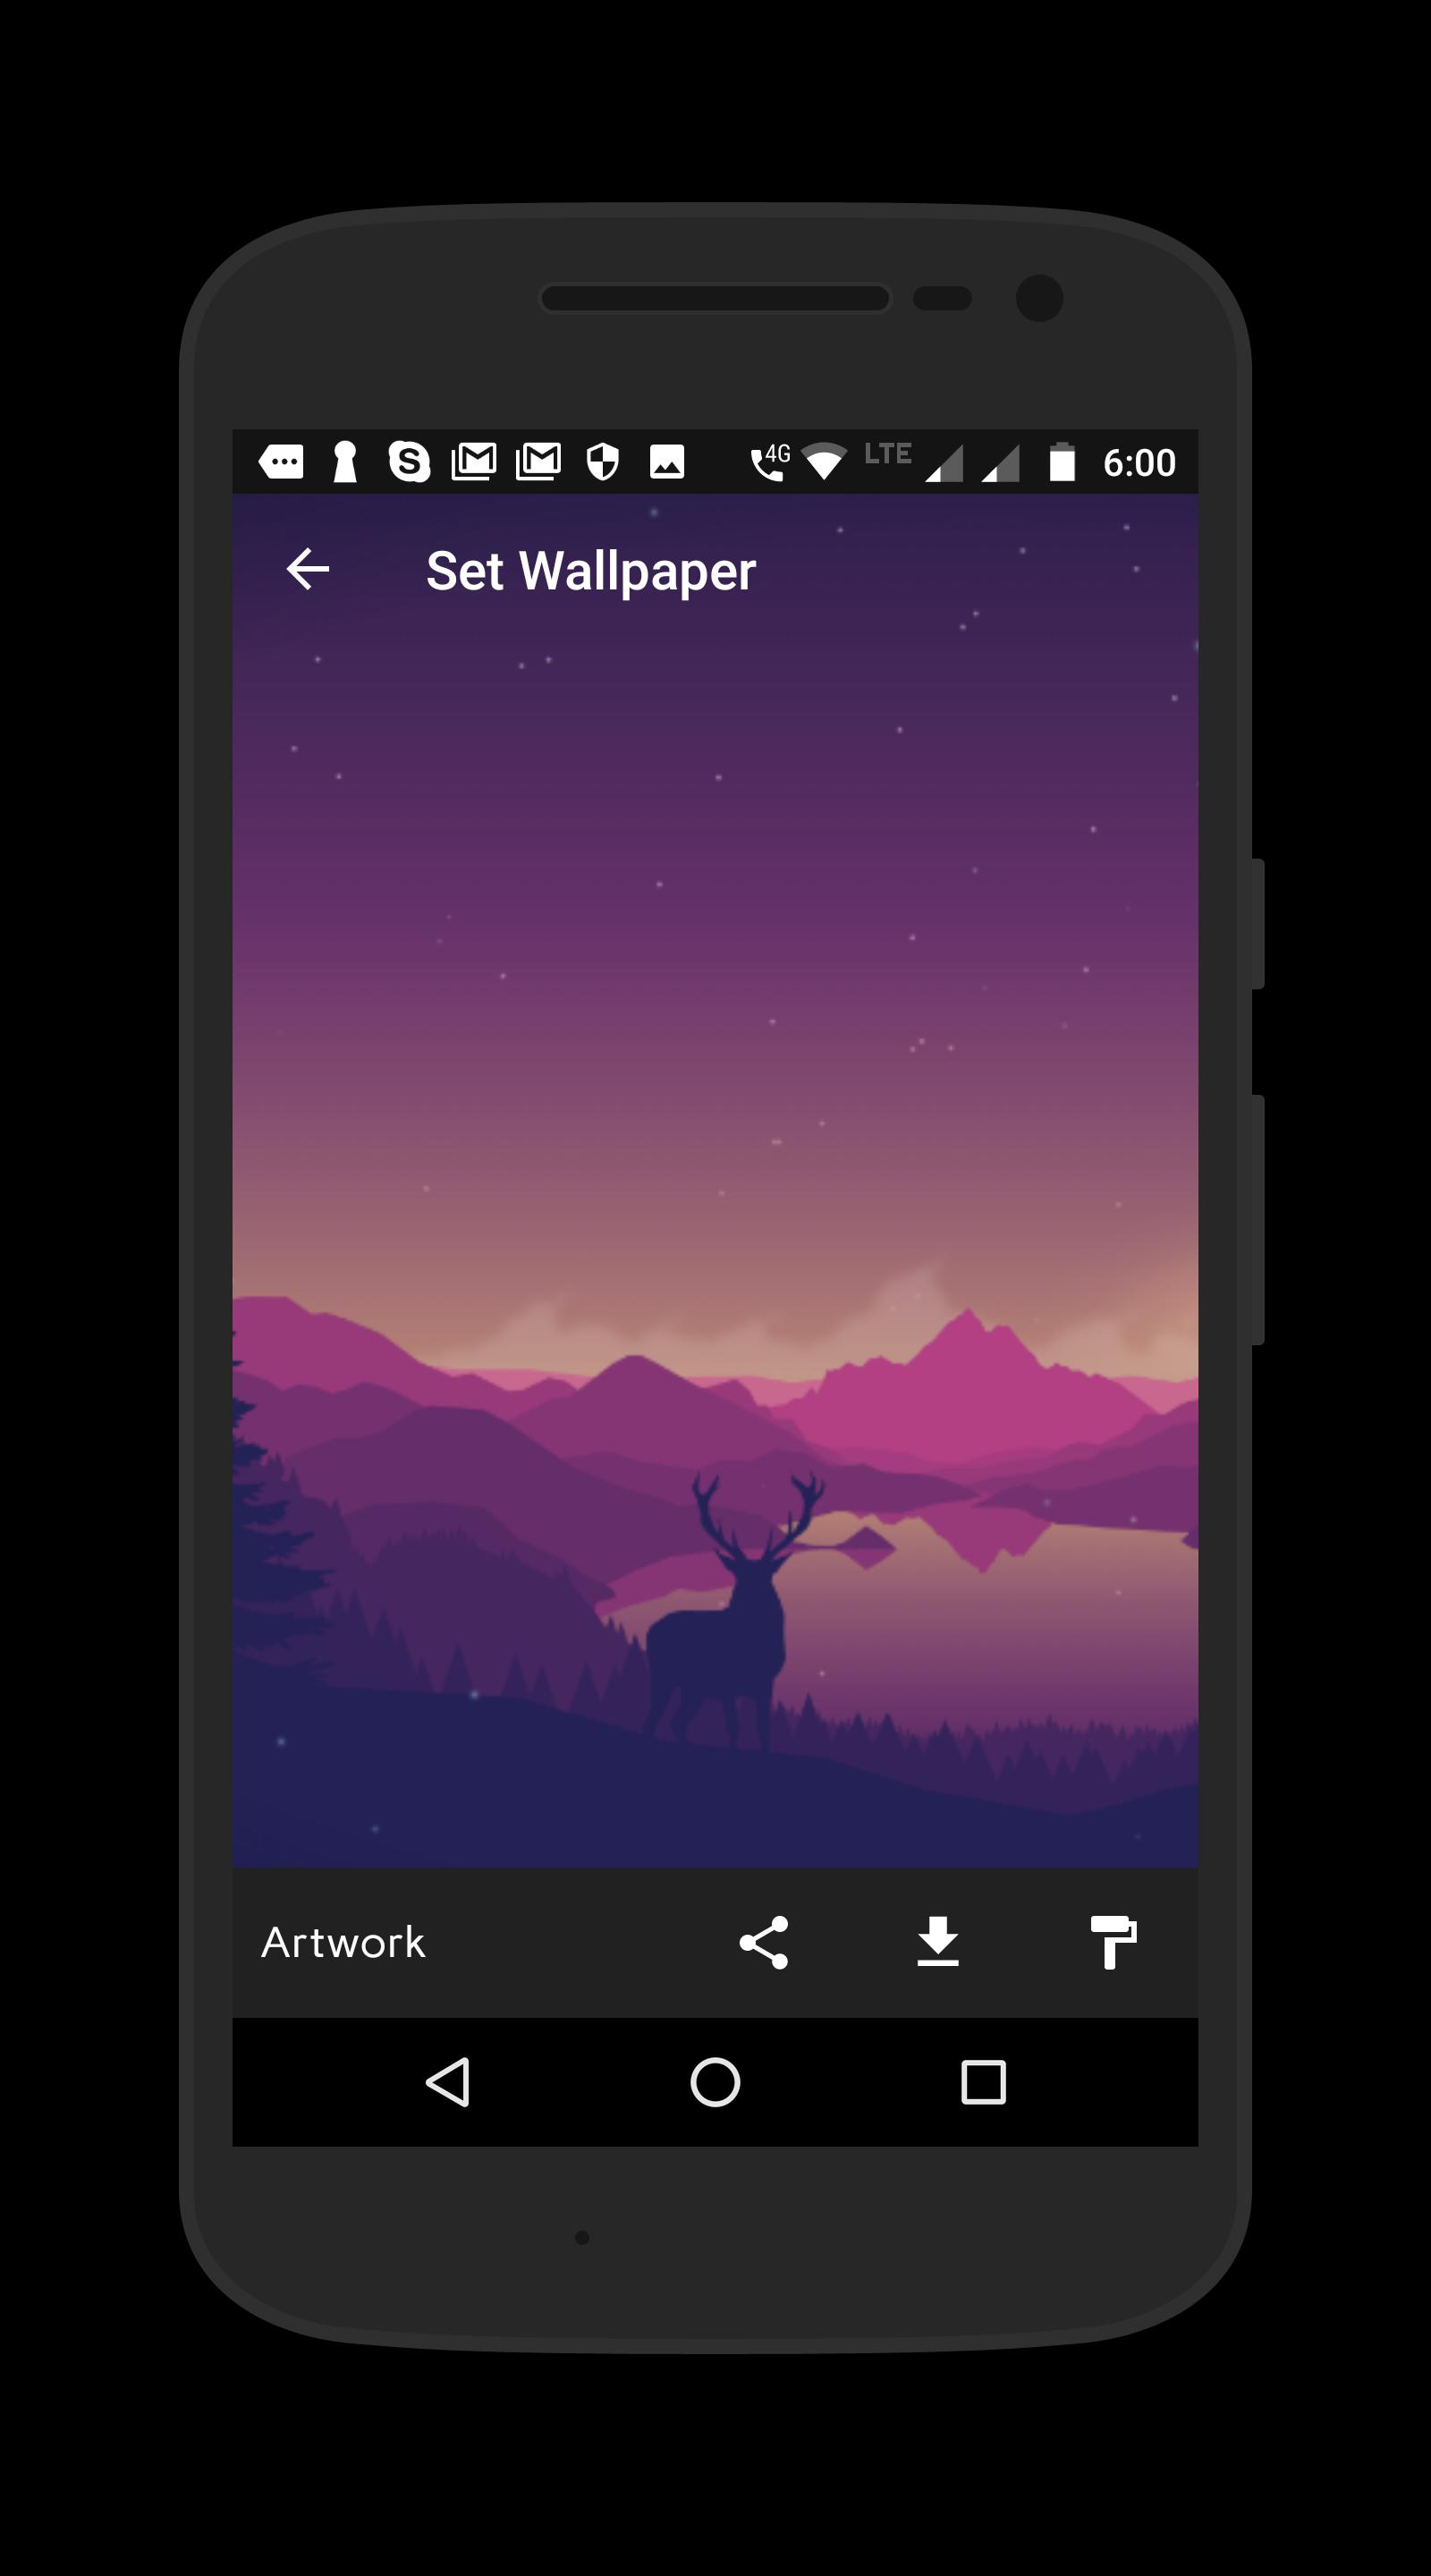 Wally 2 The Wallpaper App For Android Apk Download